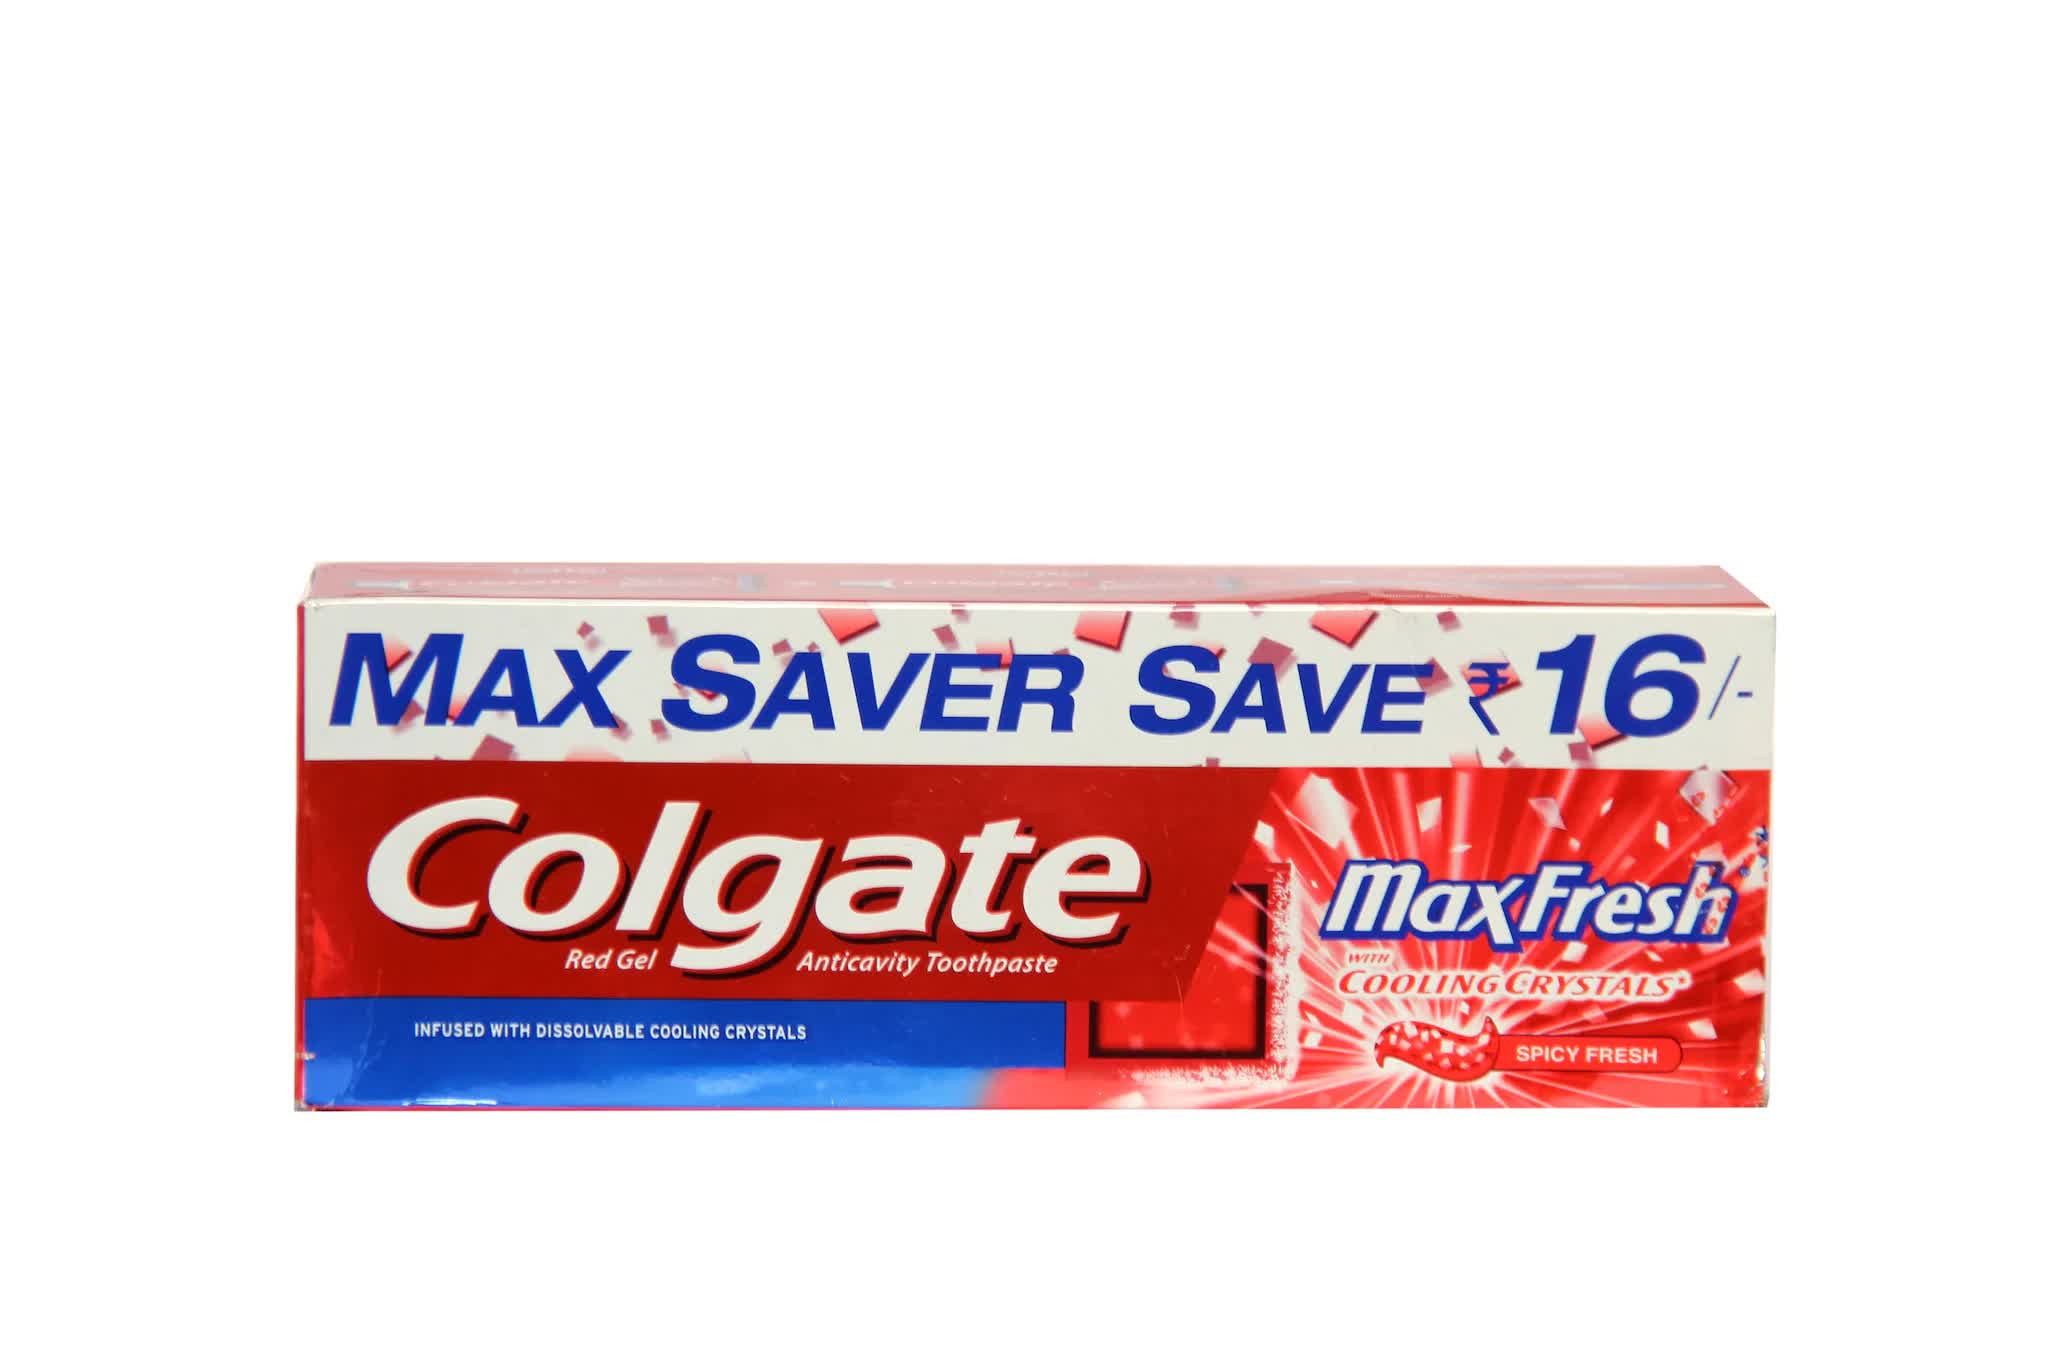 Colgate Maxfresh Spicy Fresh Toothpaste With Toothbrush